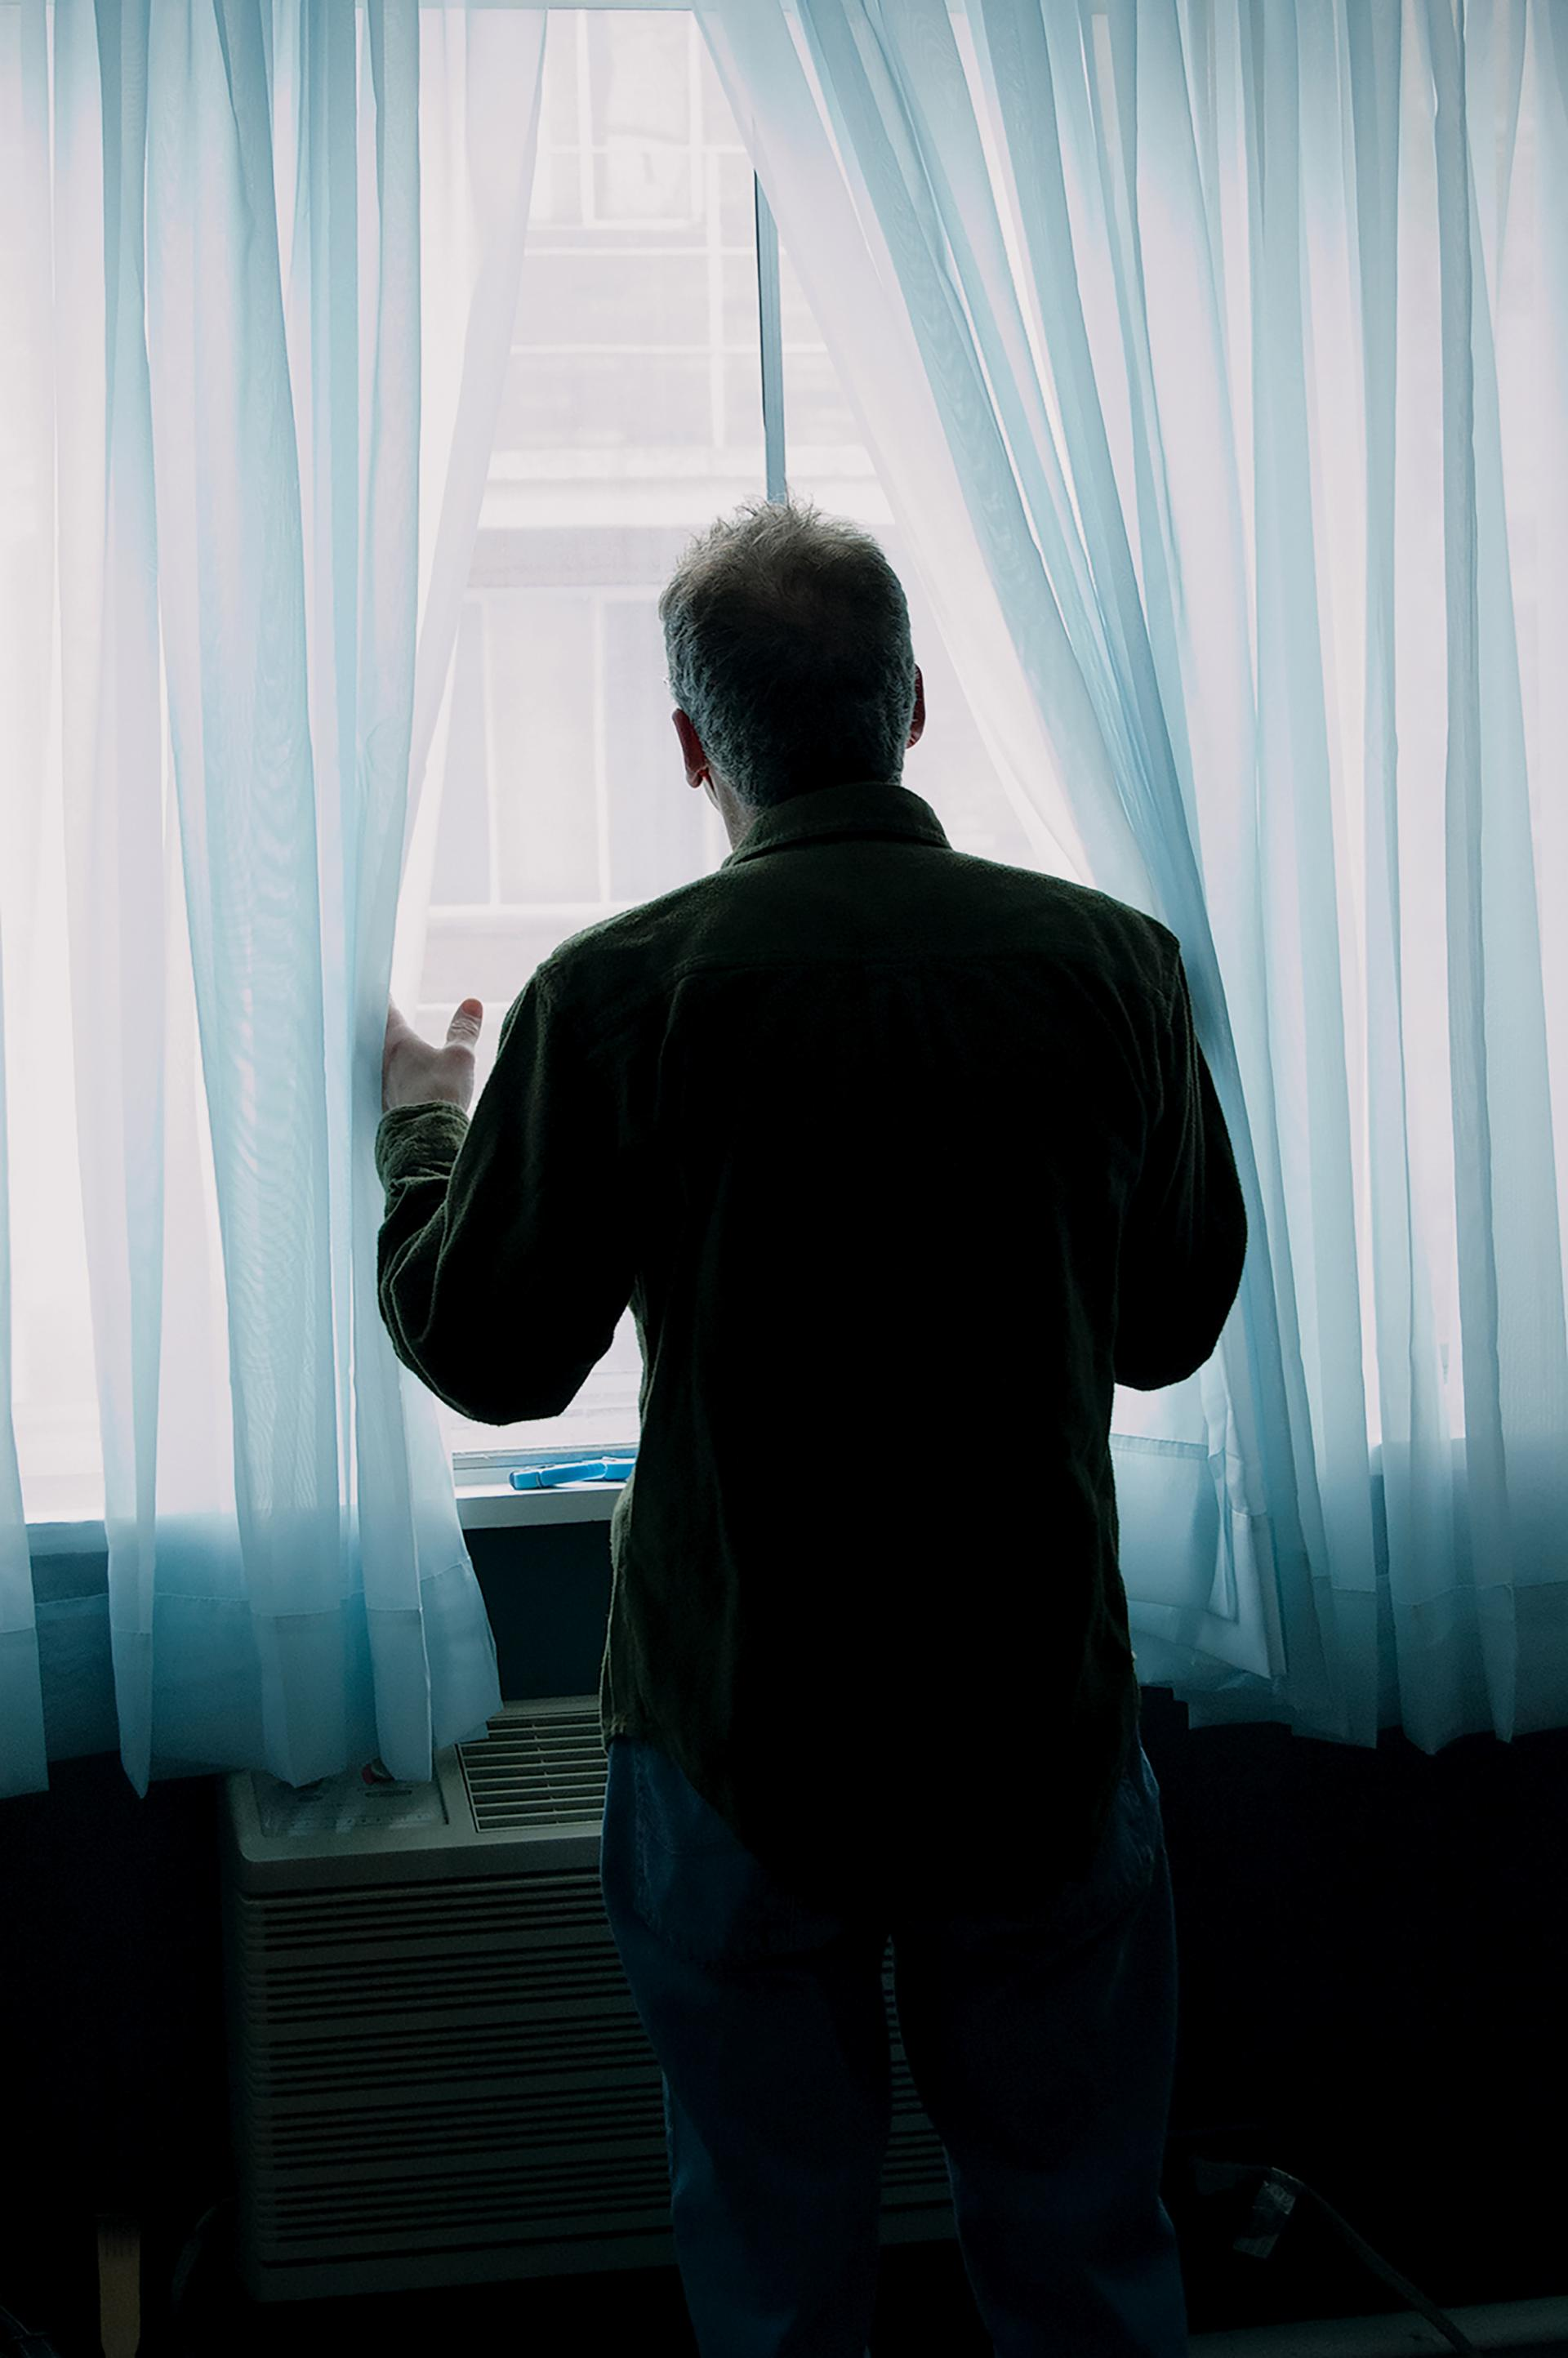 A color photograph of a person looking through translucent blue curtains, seen from behind.